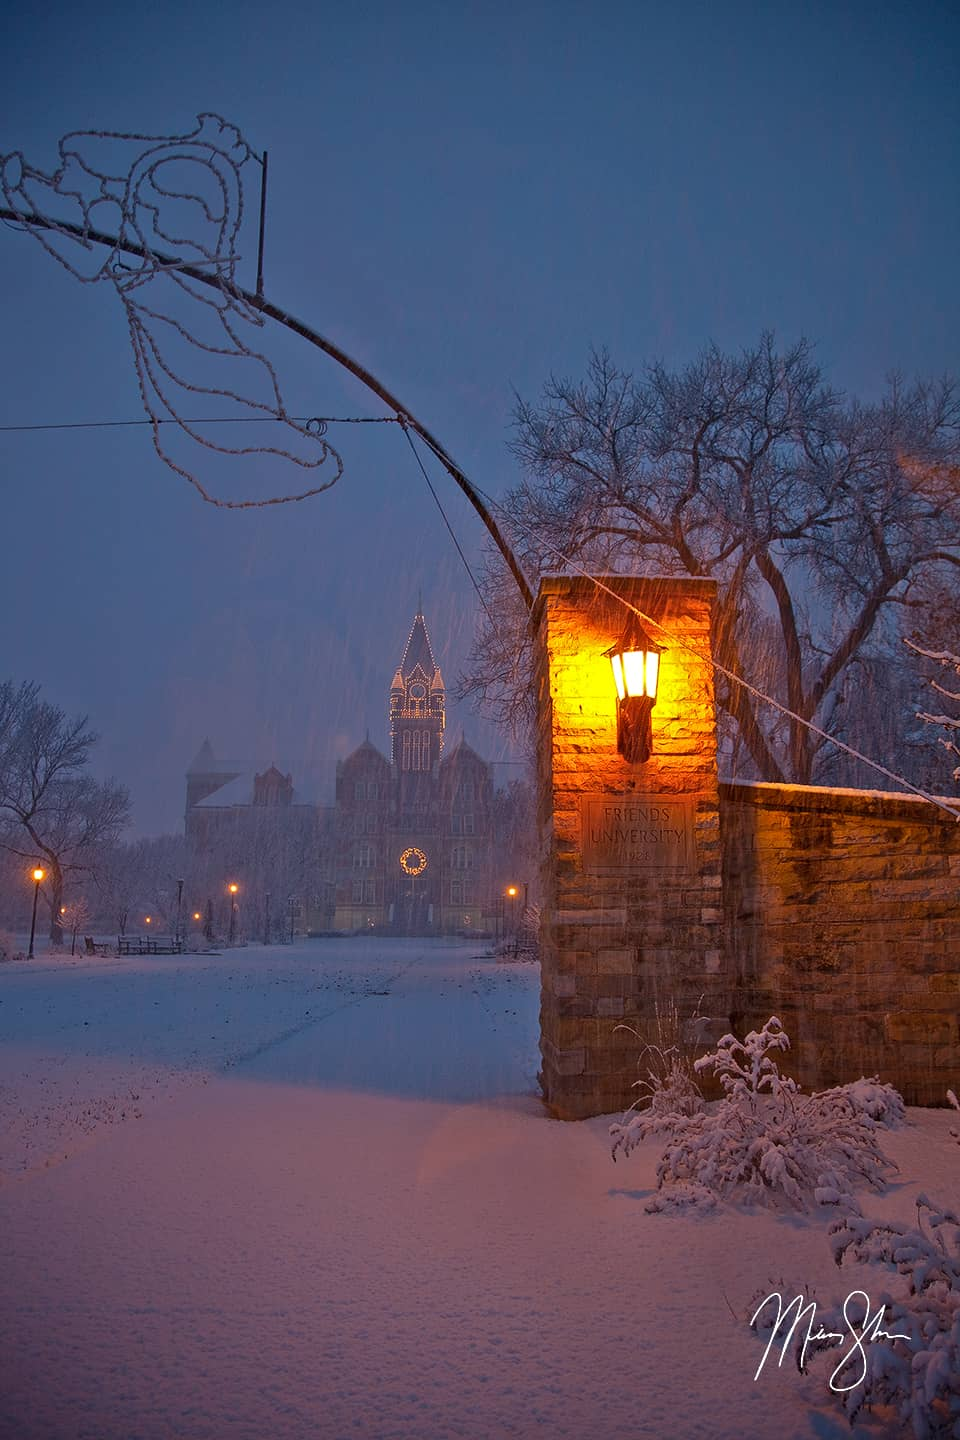 Open edition fine art print of Snowy Scene at Friends University from Mickey Shannon Photography. Location: Friends University, Wichita, KS